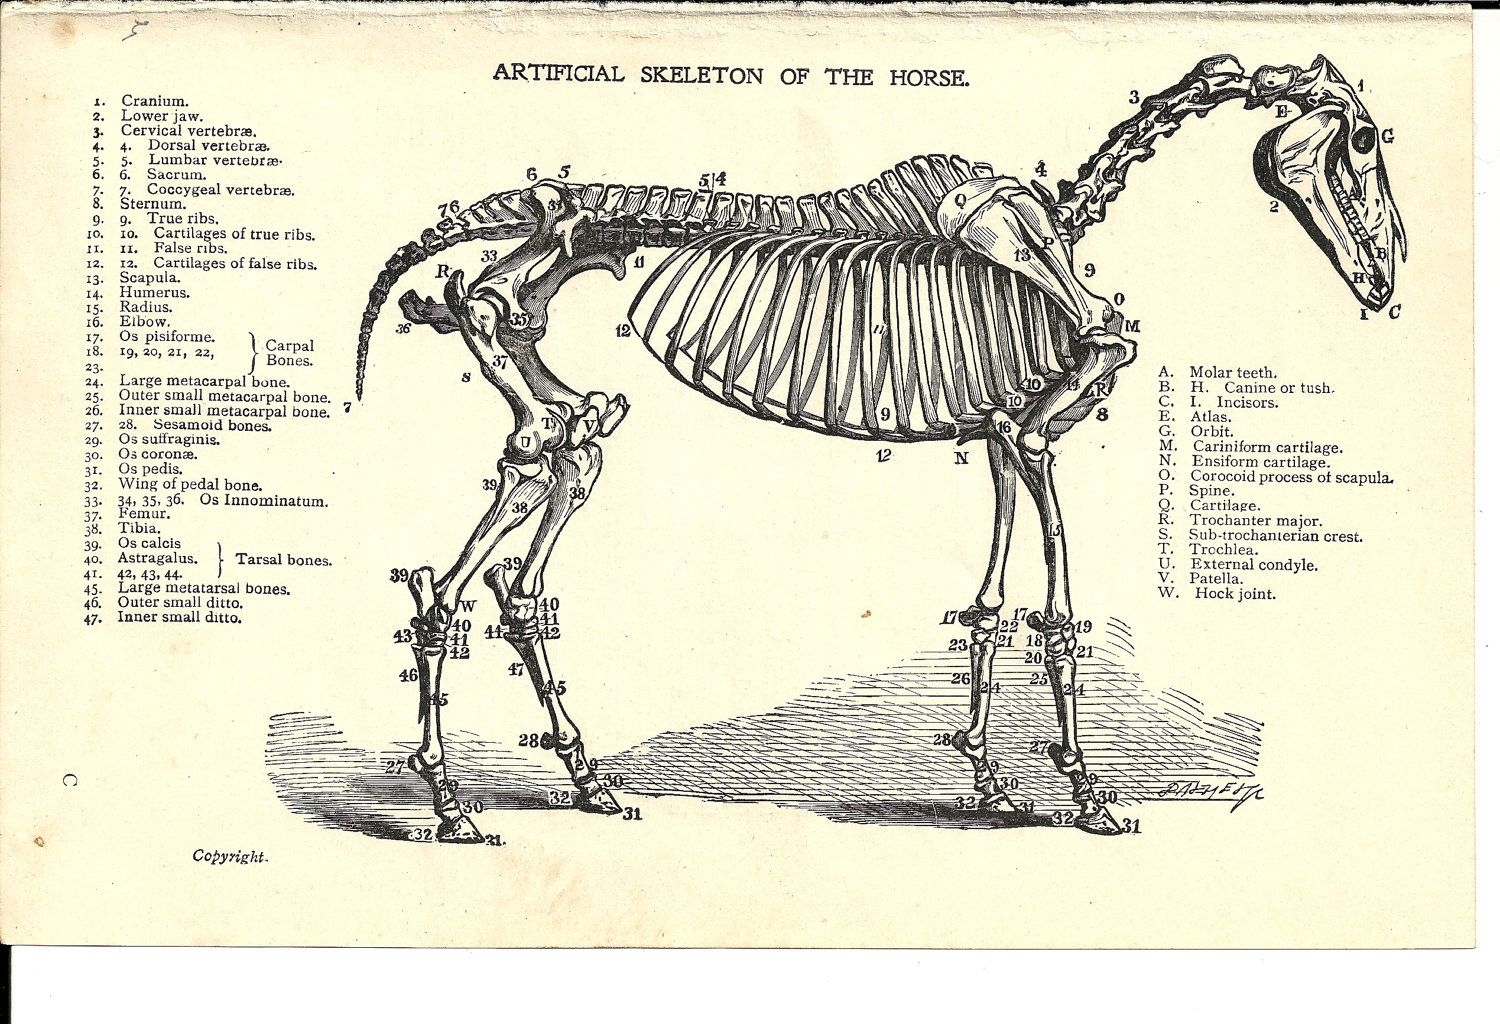 Horse Skeleton Diagram Labeled Scosche Wiring Harness Anatomy Illustration Of